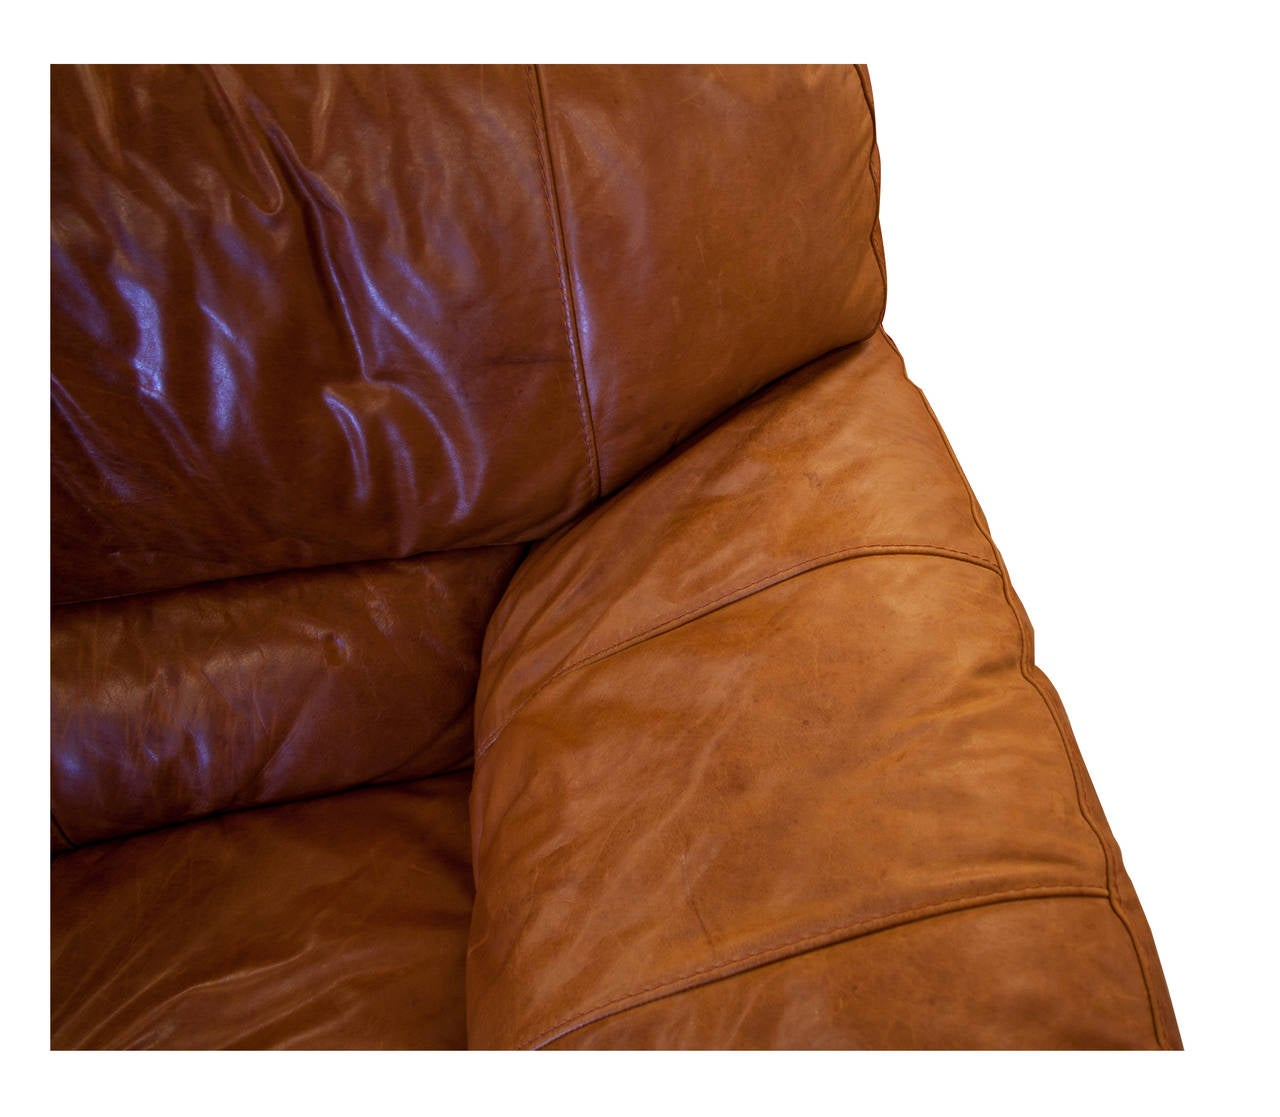 Mid Century Large Curved Tan Leather Sofa At 1stdibs